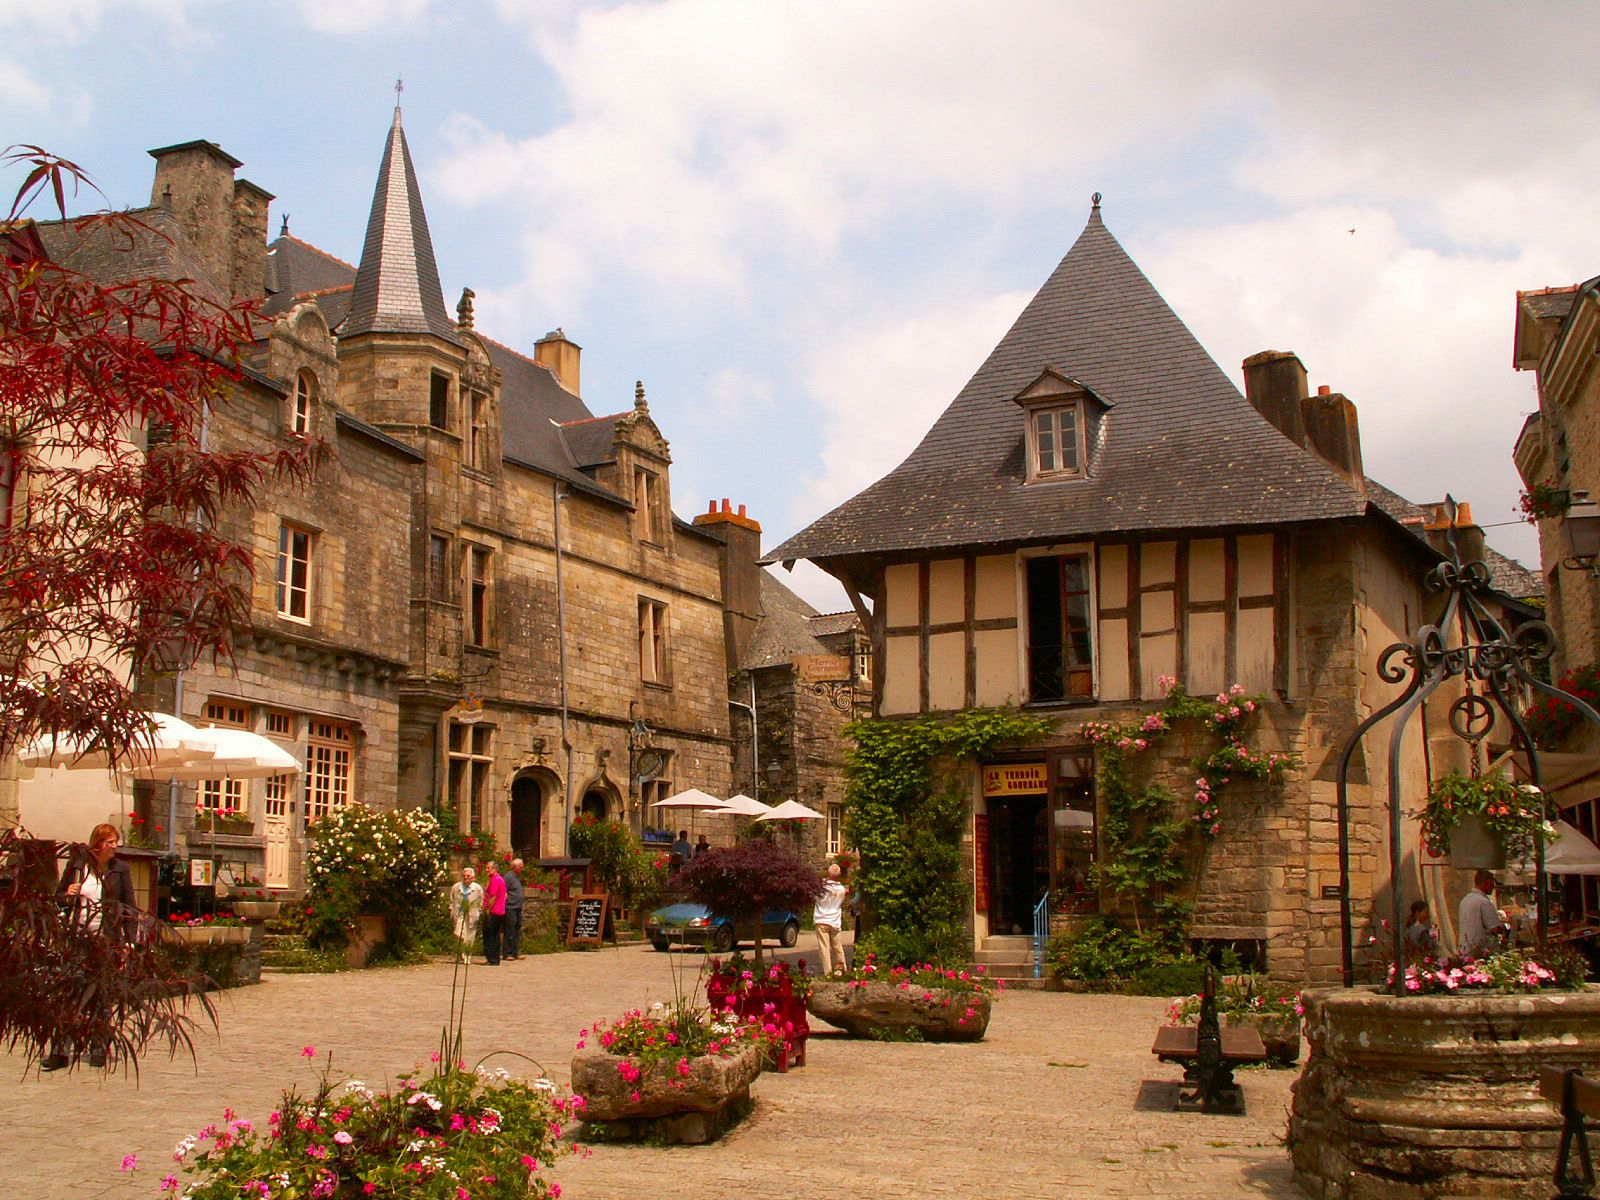 Best 25 Hotel rochefort ideas on Pinterest